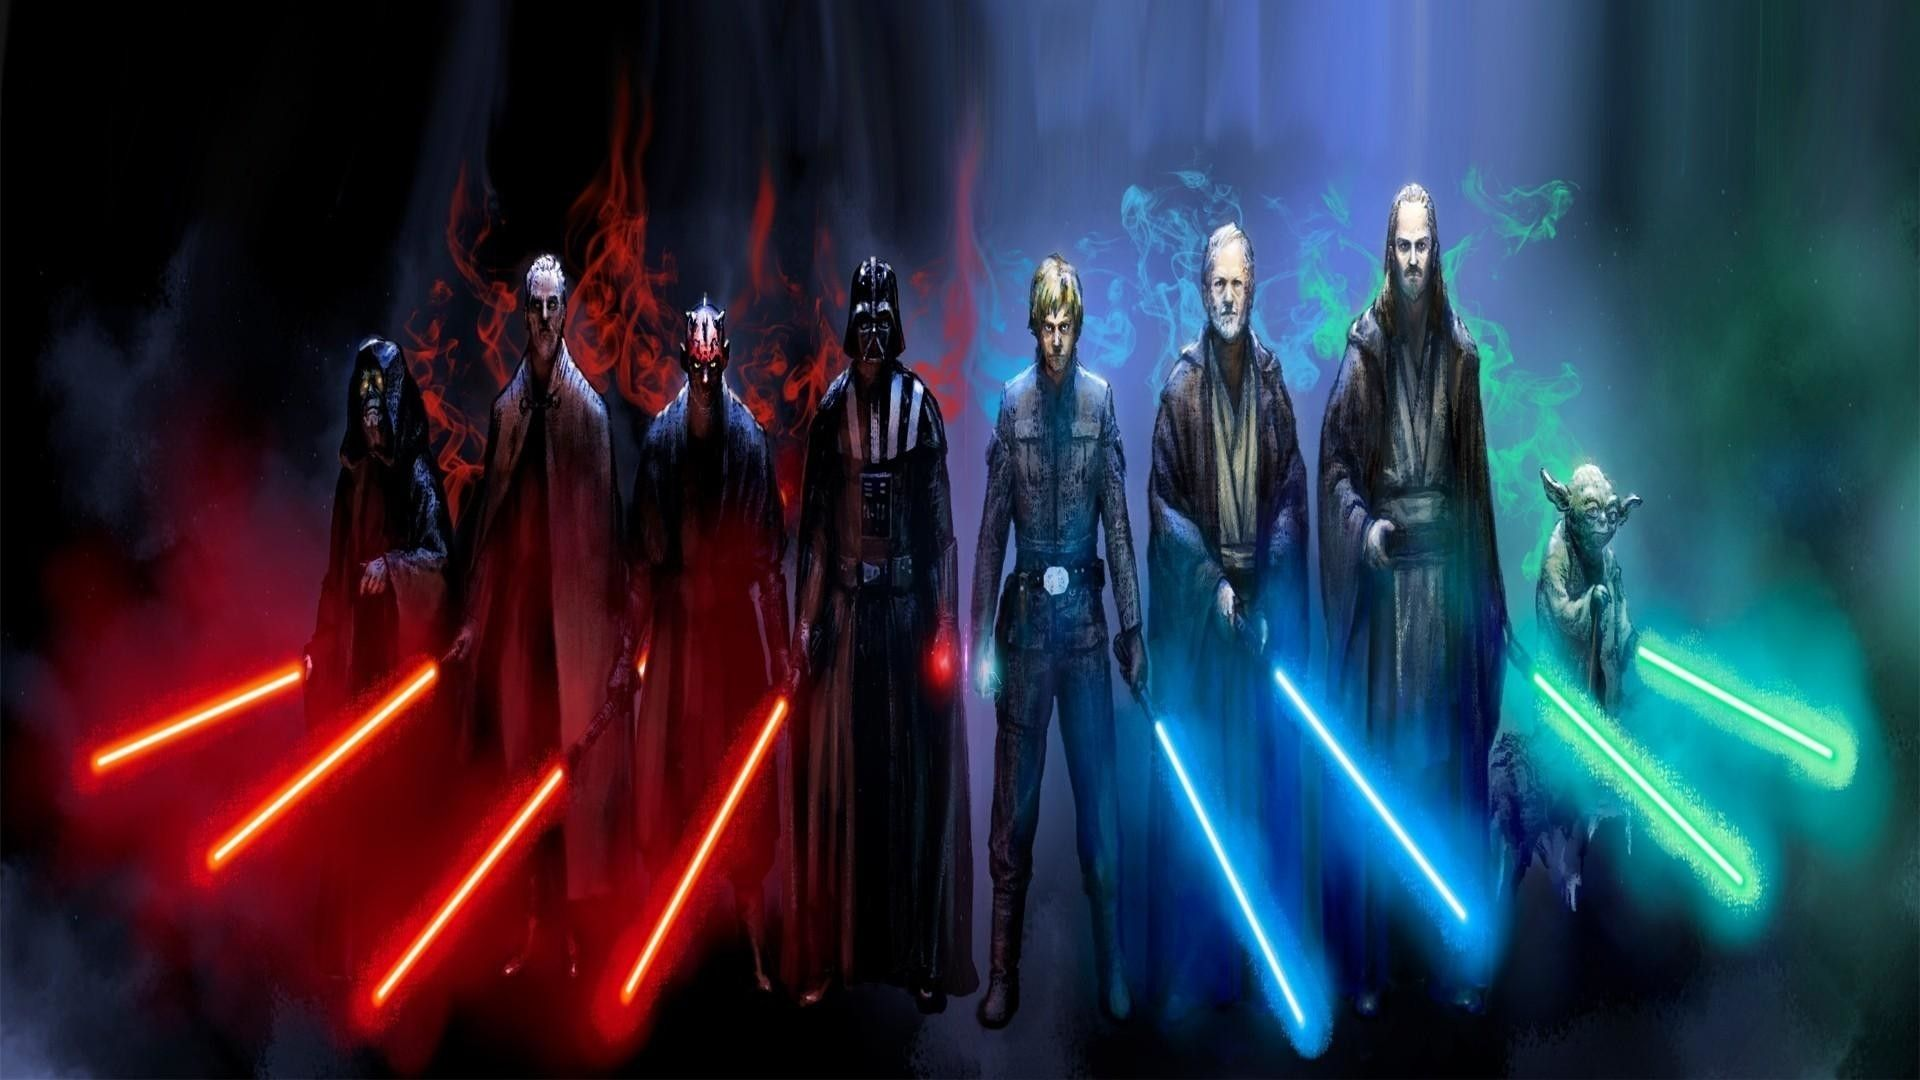 10 Best Jedi And Sith Wallpaper Full Hd 1920 1080 For Pc Background Star Wars Wallpaper Star Wars Concept Art Star Wars